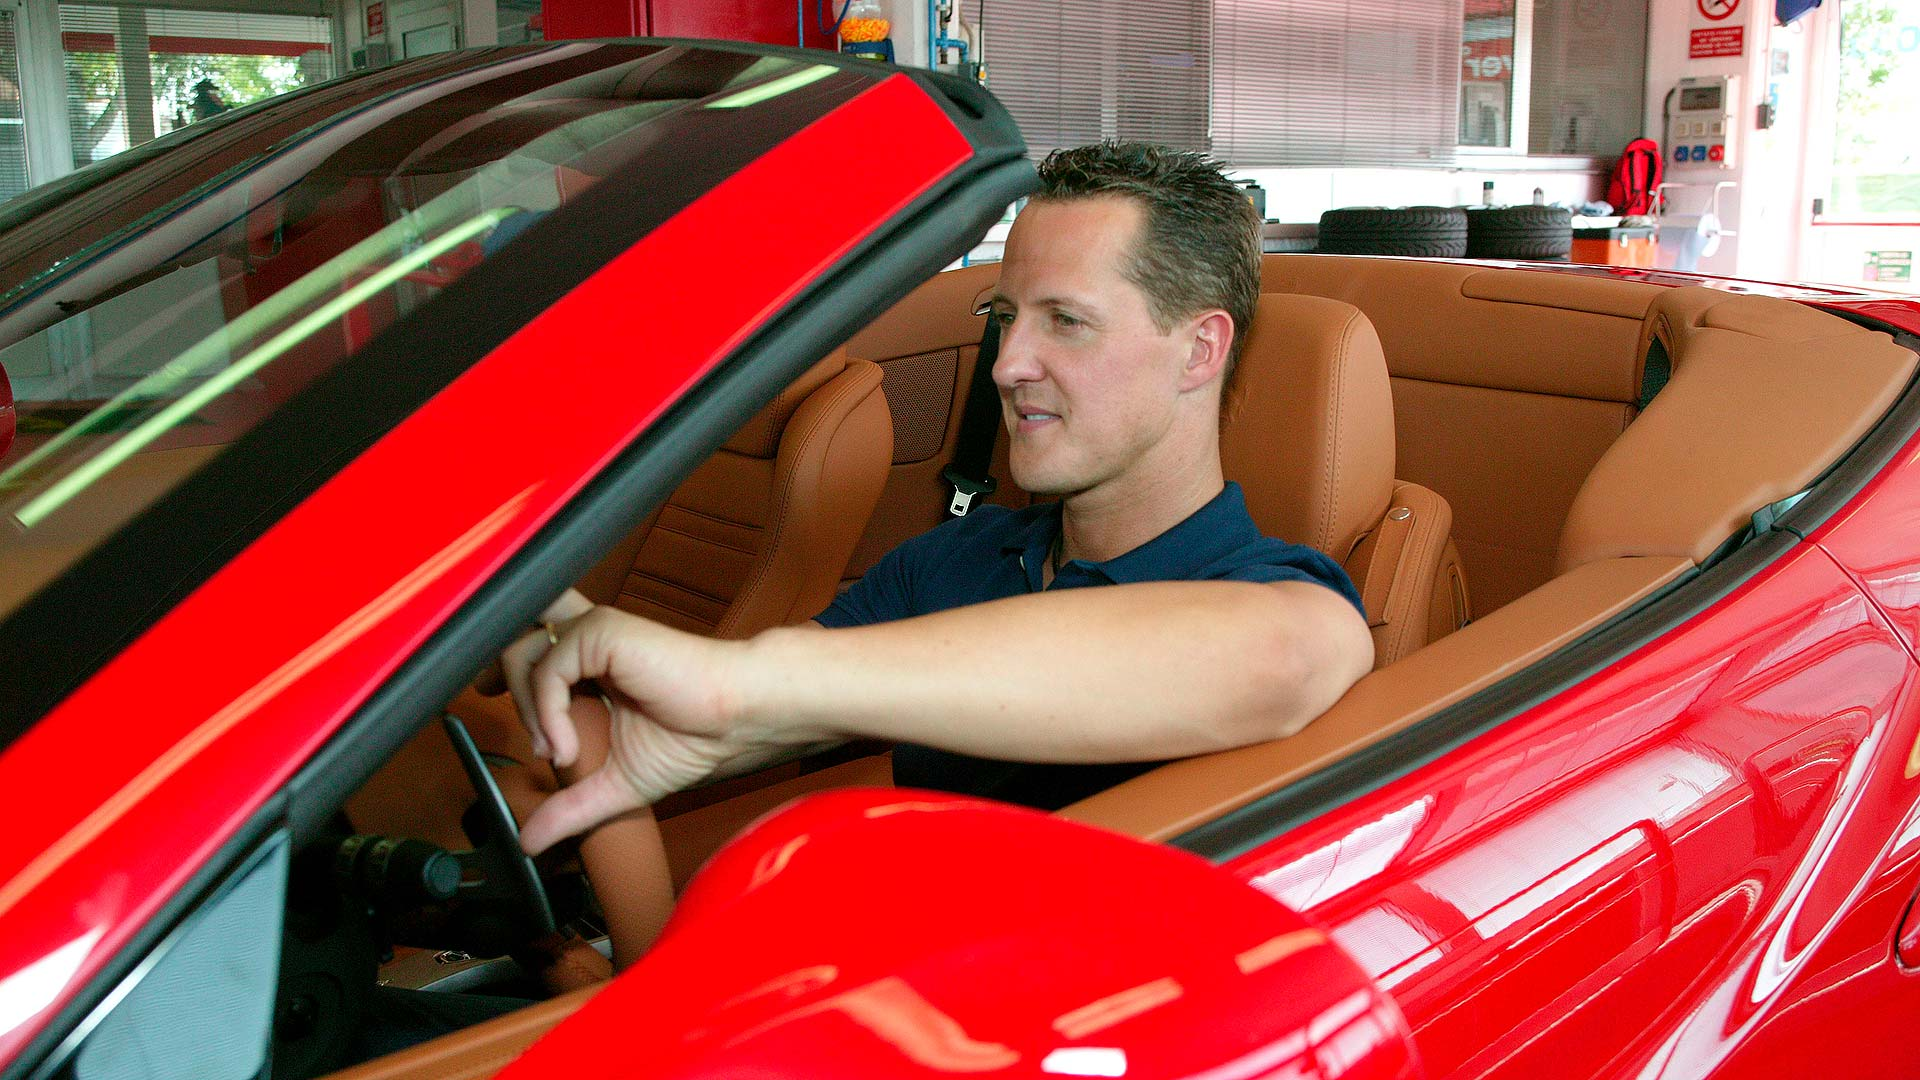 Michael Schumacher and the Ferrari California